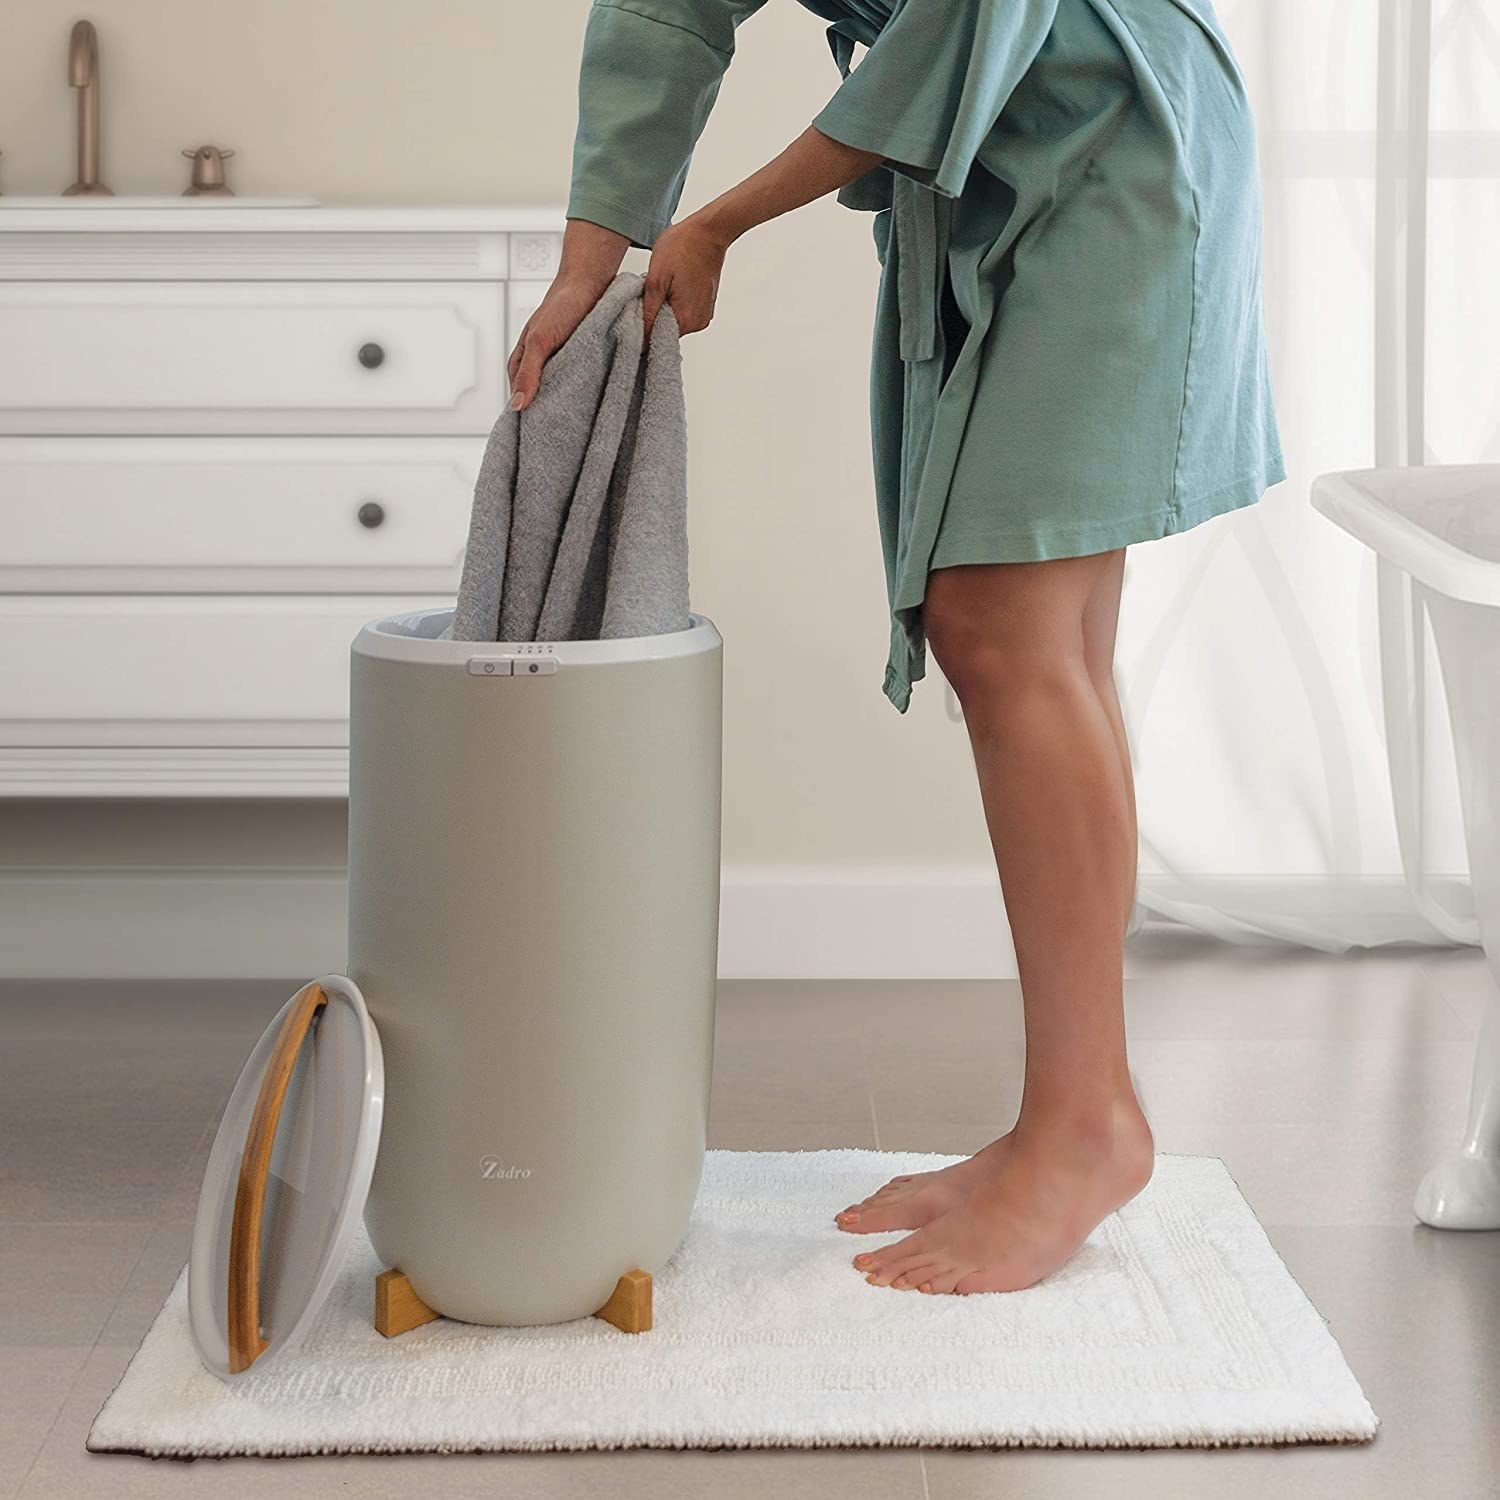 Person pulling towels out of upright towel warmer